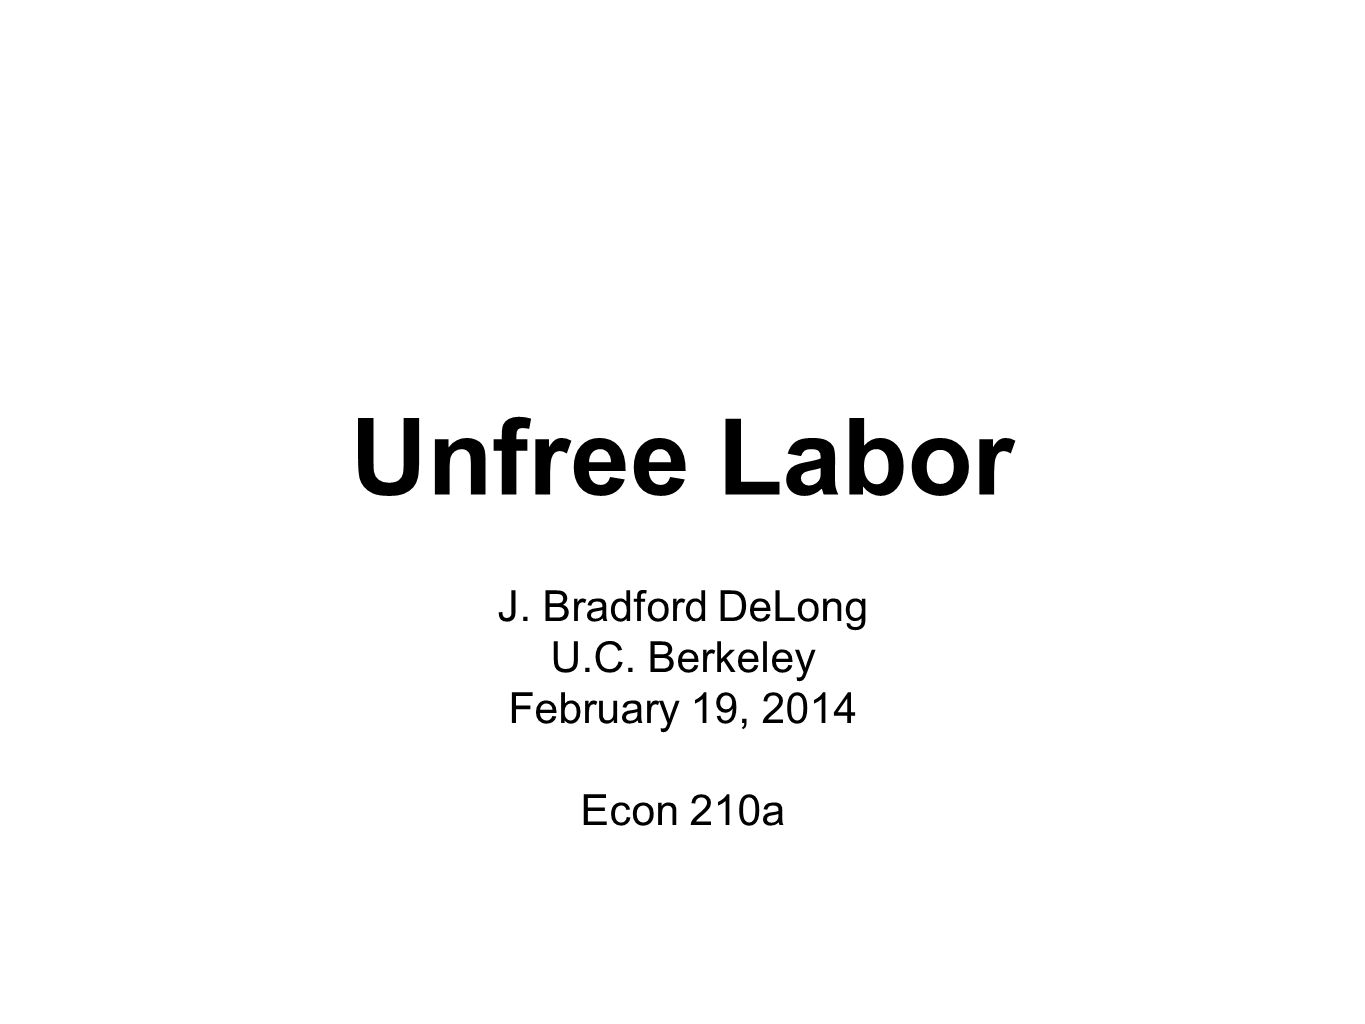 Unfree Labor J. Bradford DeLong U.C. Berkeley February 19, 2014 Econ 210a